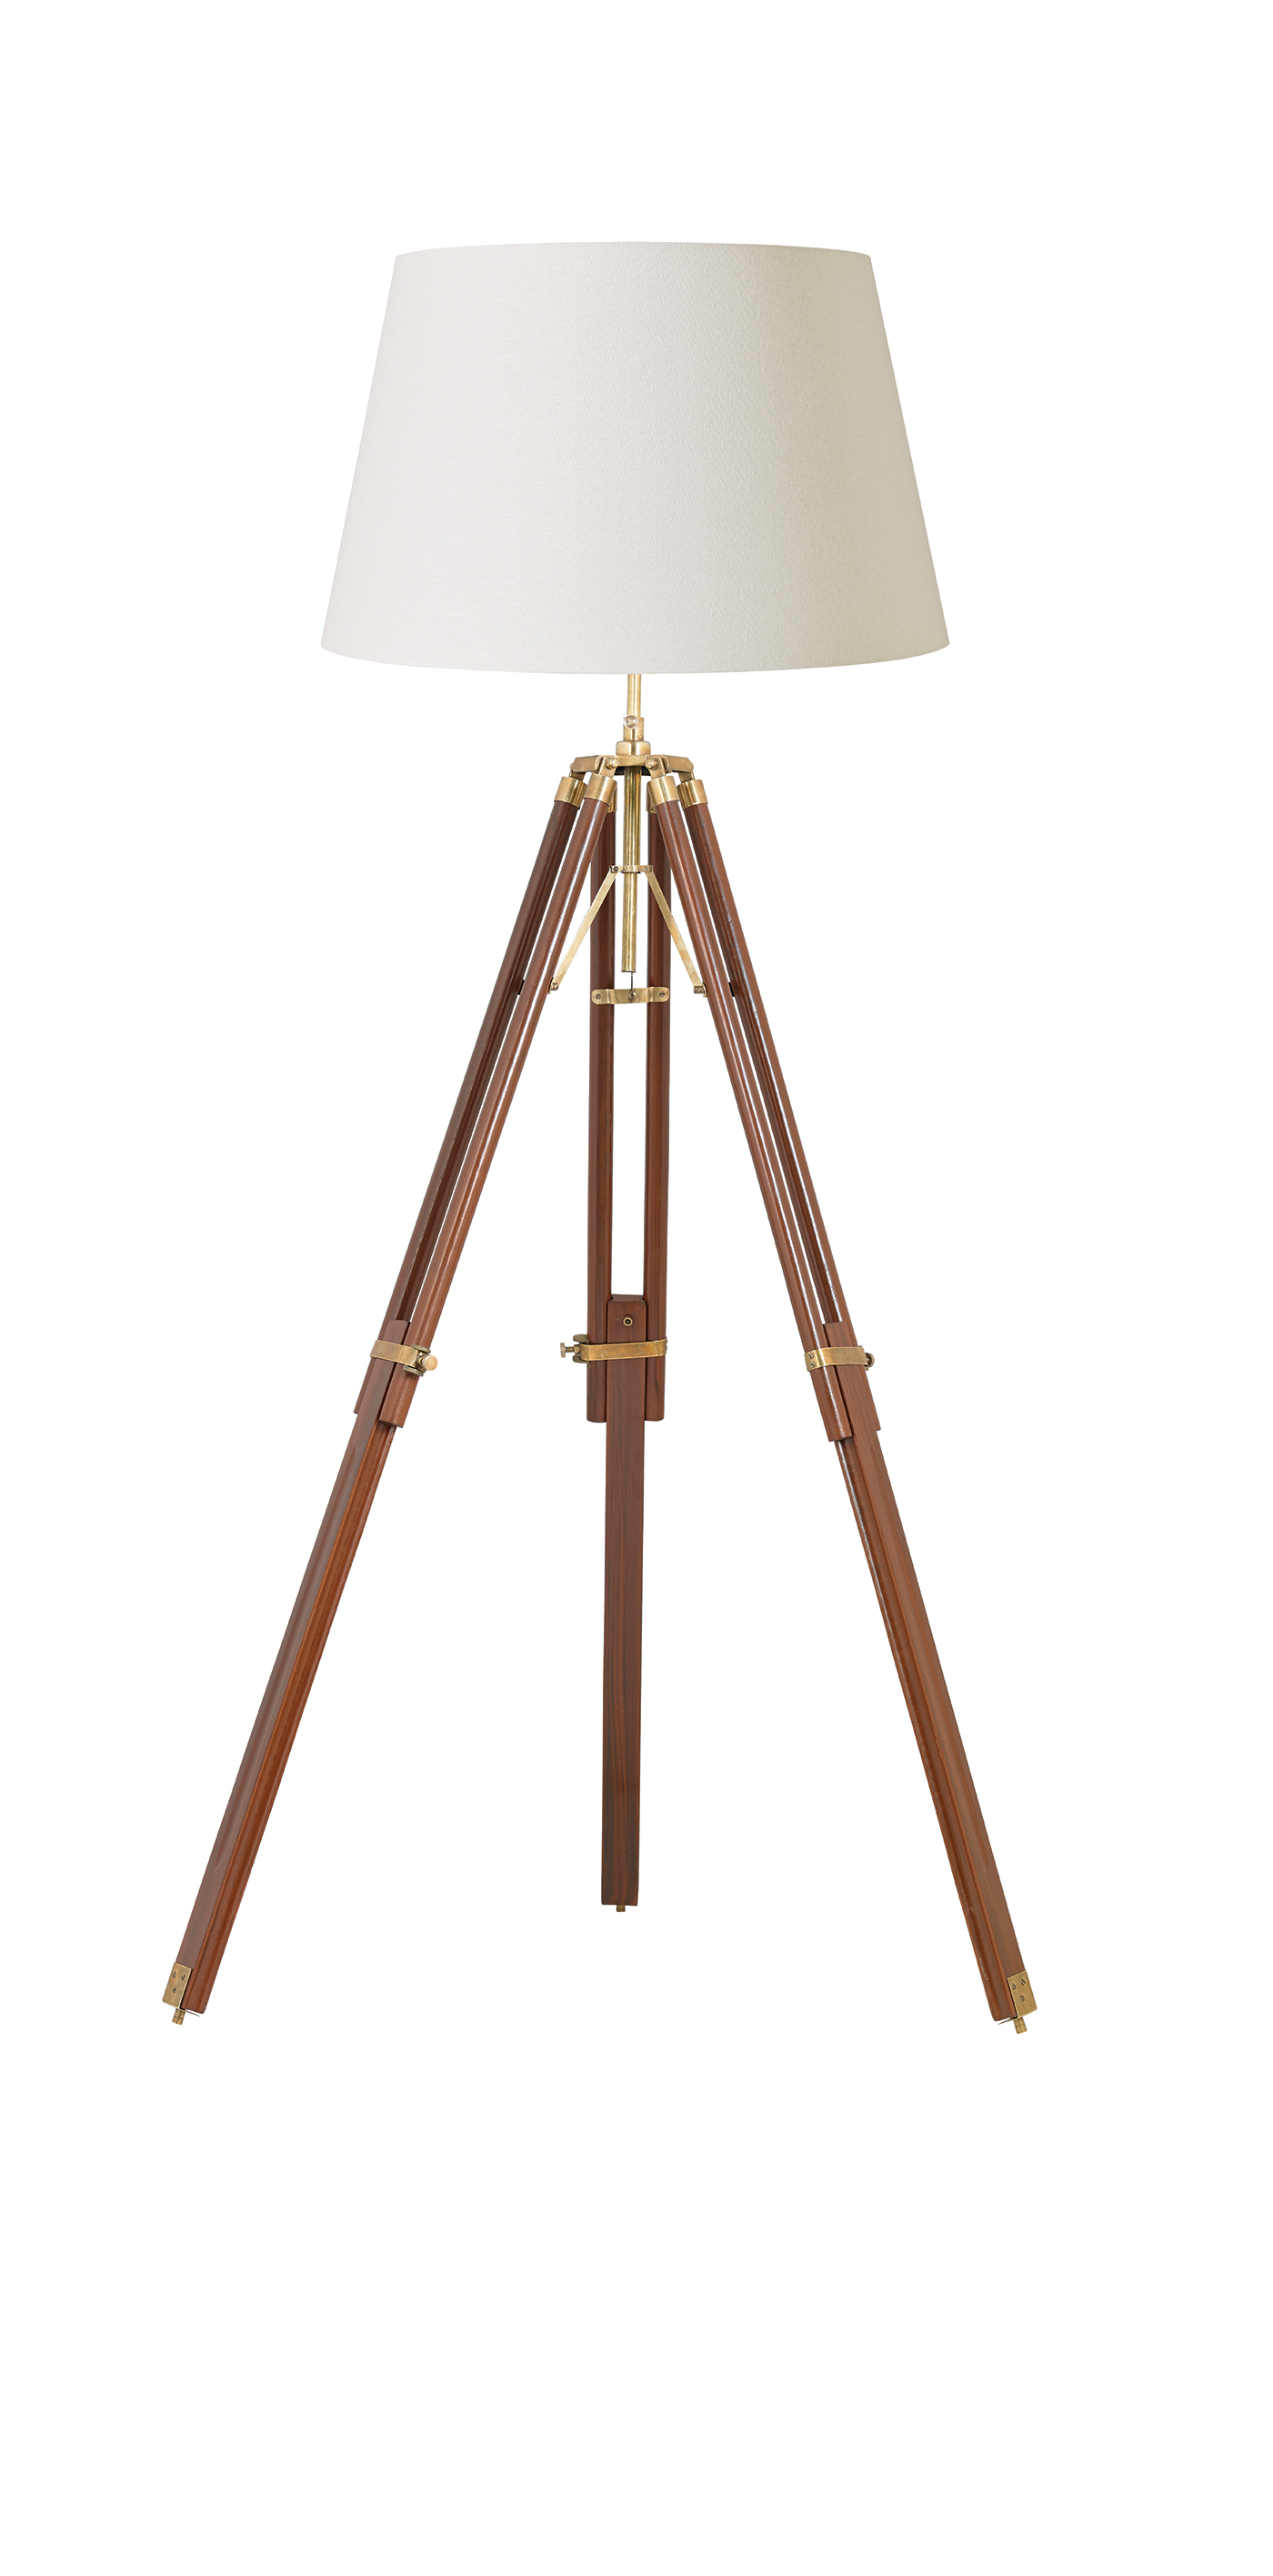 Endon Tripod base only floor lamp 60W Sheesham wood & solid brass